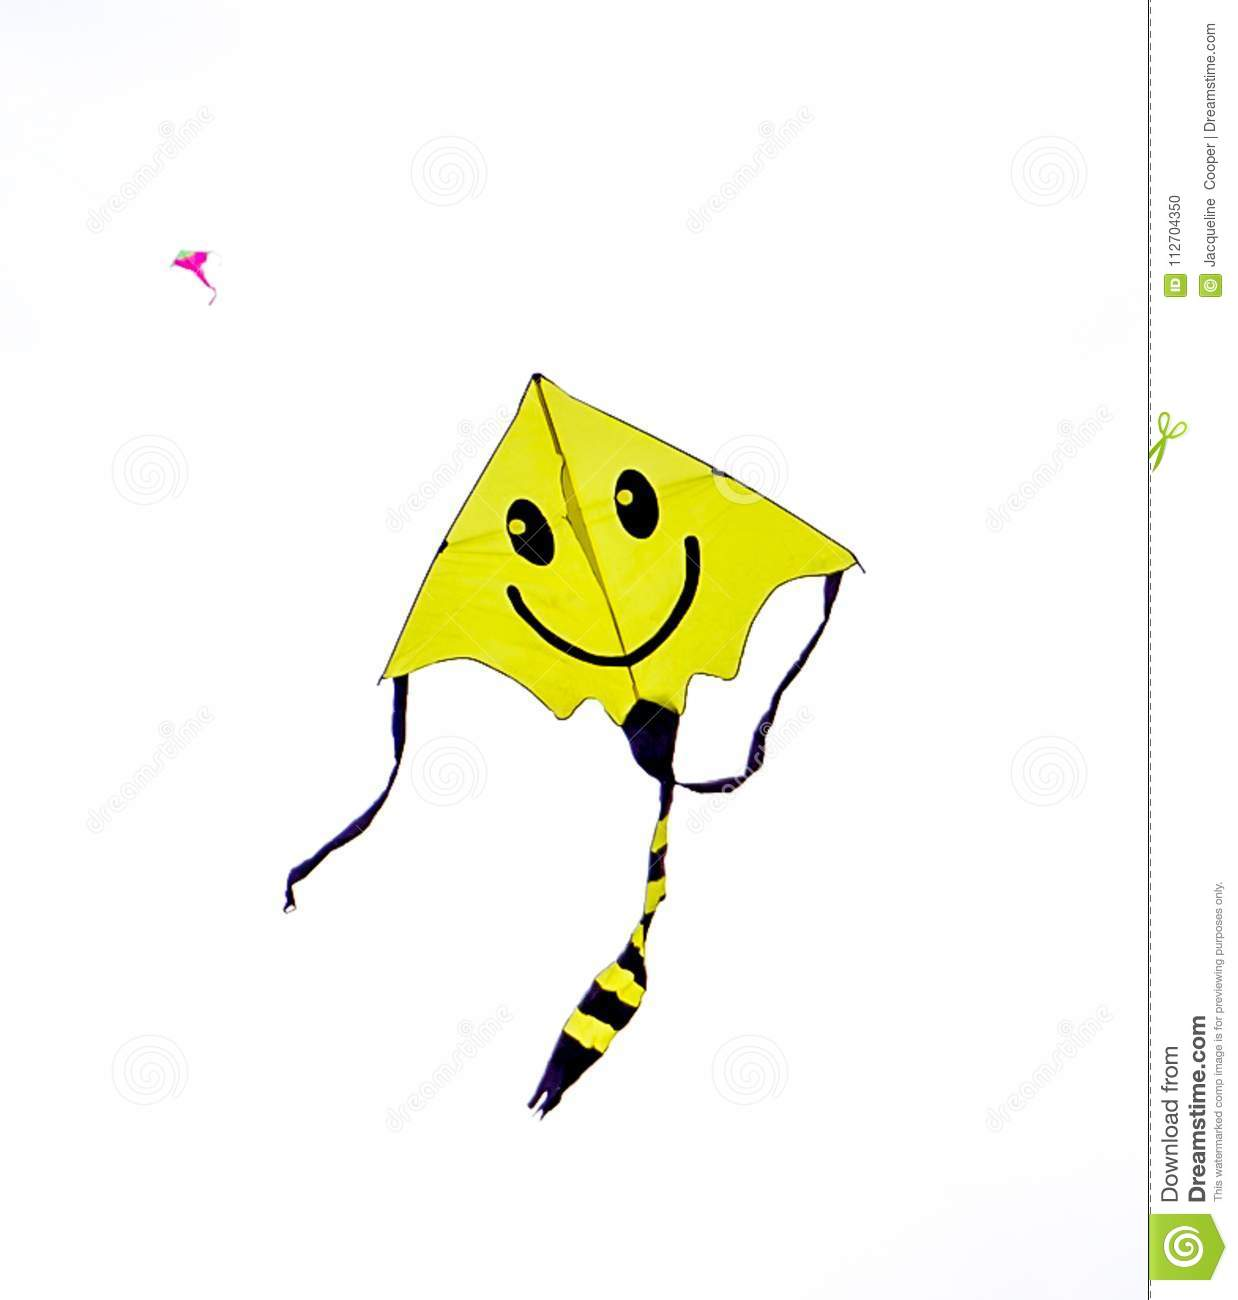 Smiley Face Kite Flying In A Cloudy Skiy Stock Photo Image Of Blue